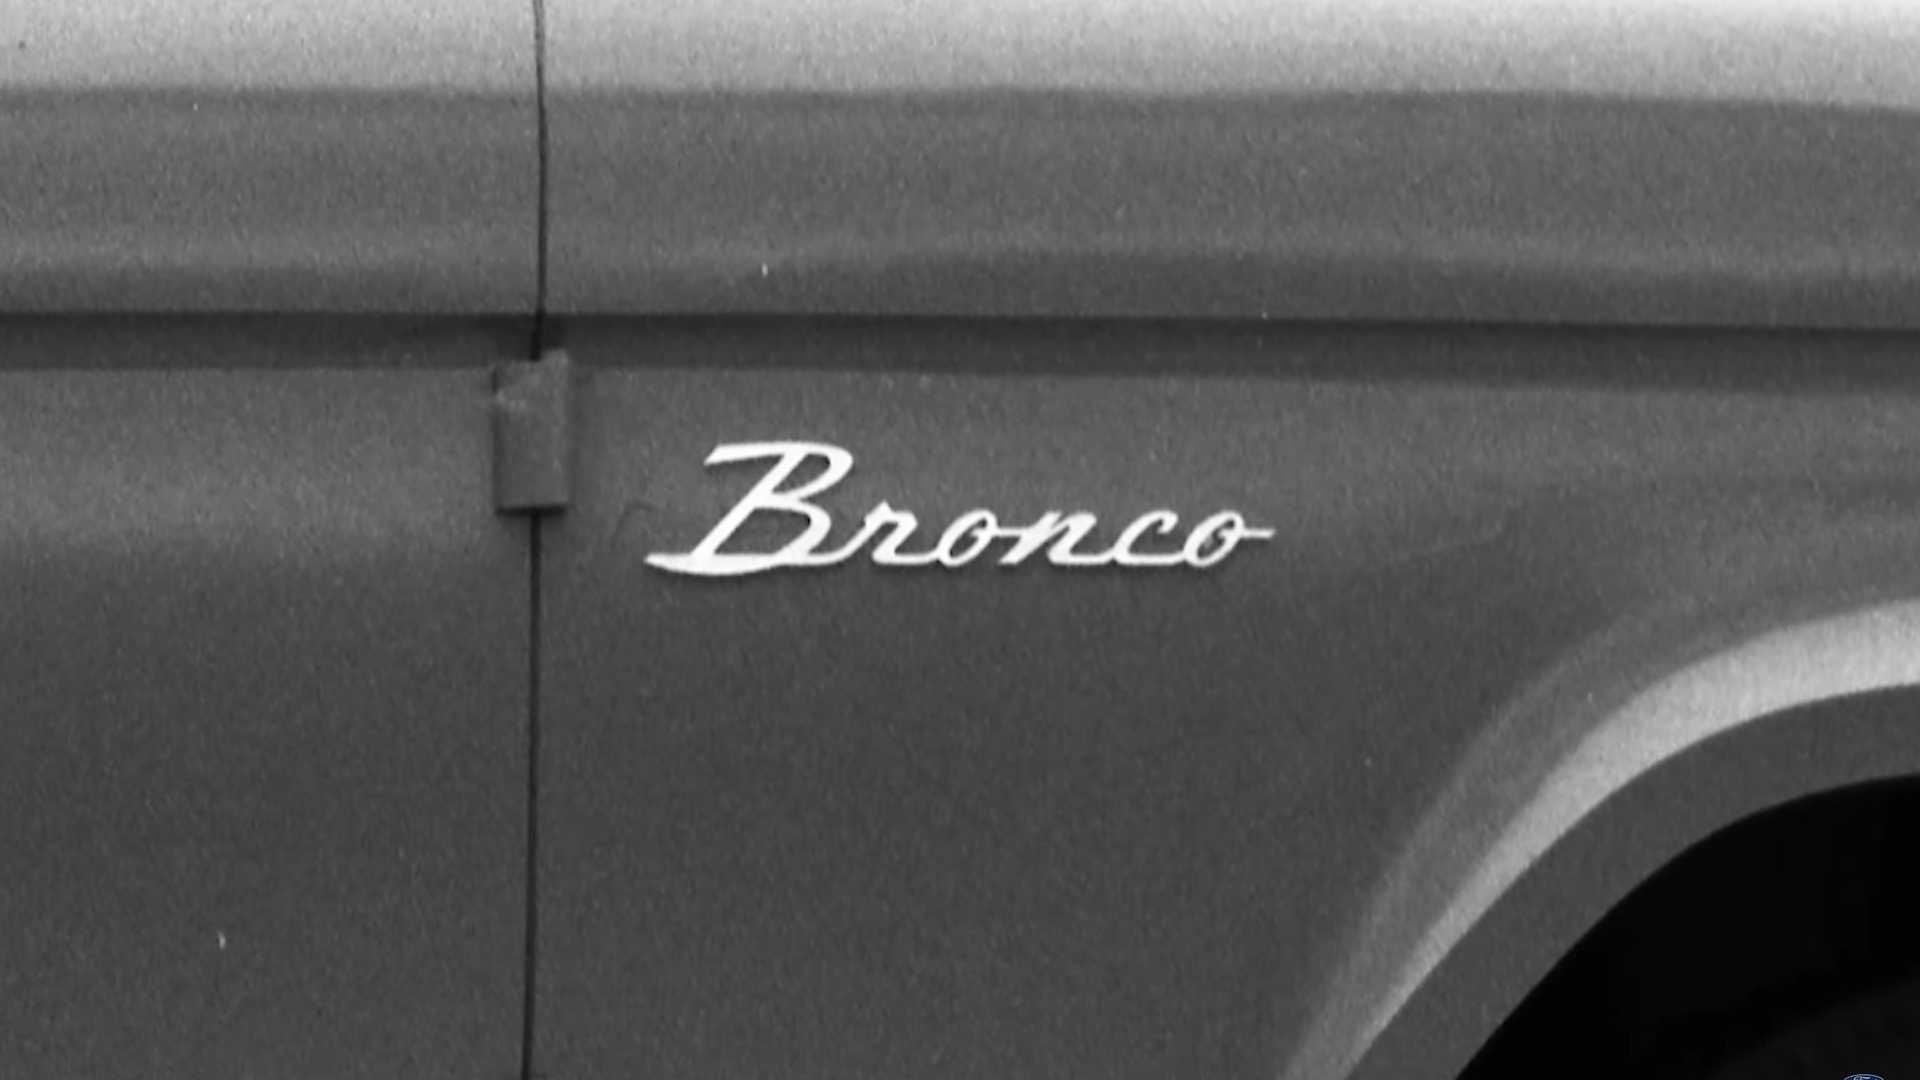 Ford Bronco Teaser Reveals Spring 2020 Date For Unveiling